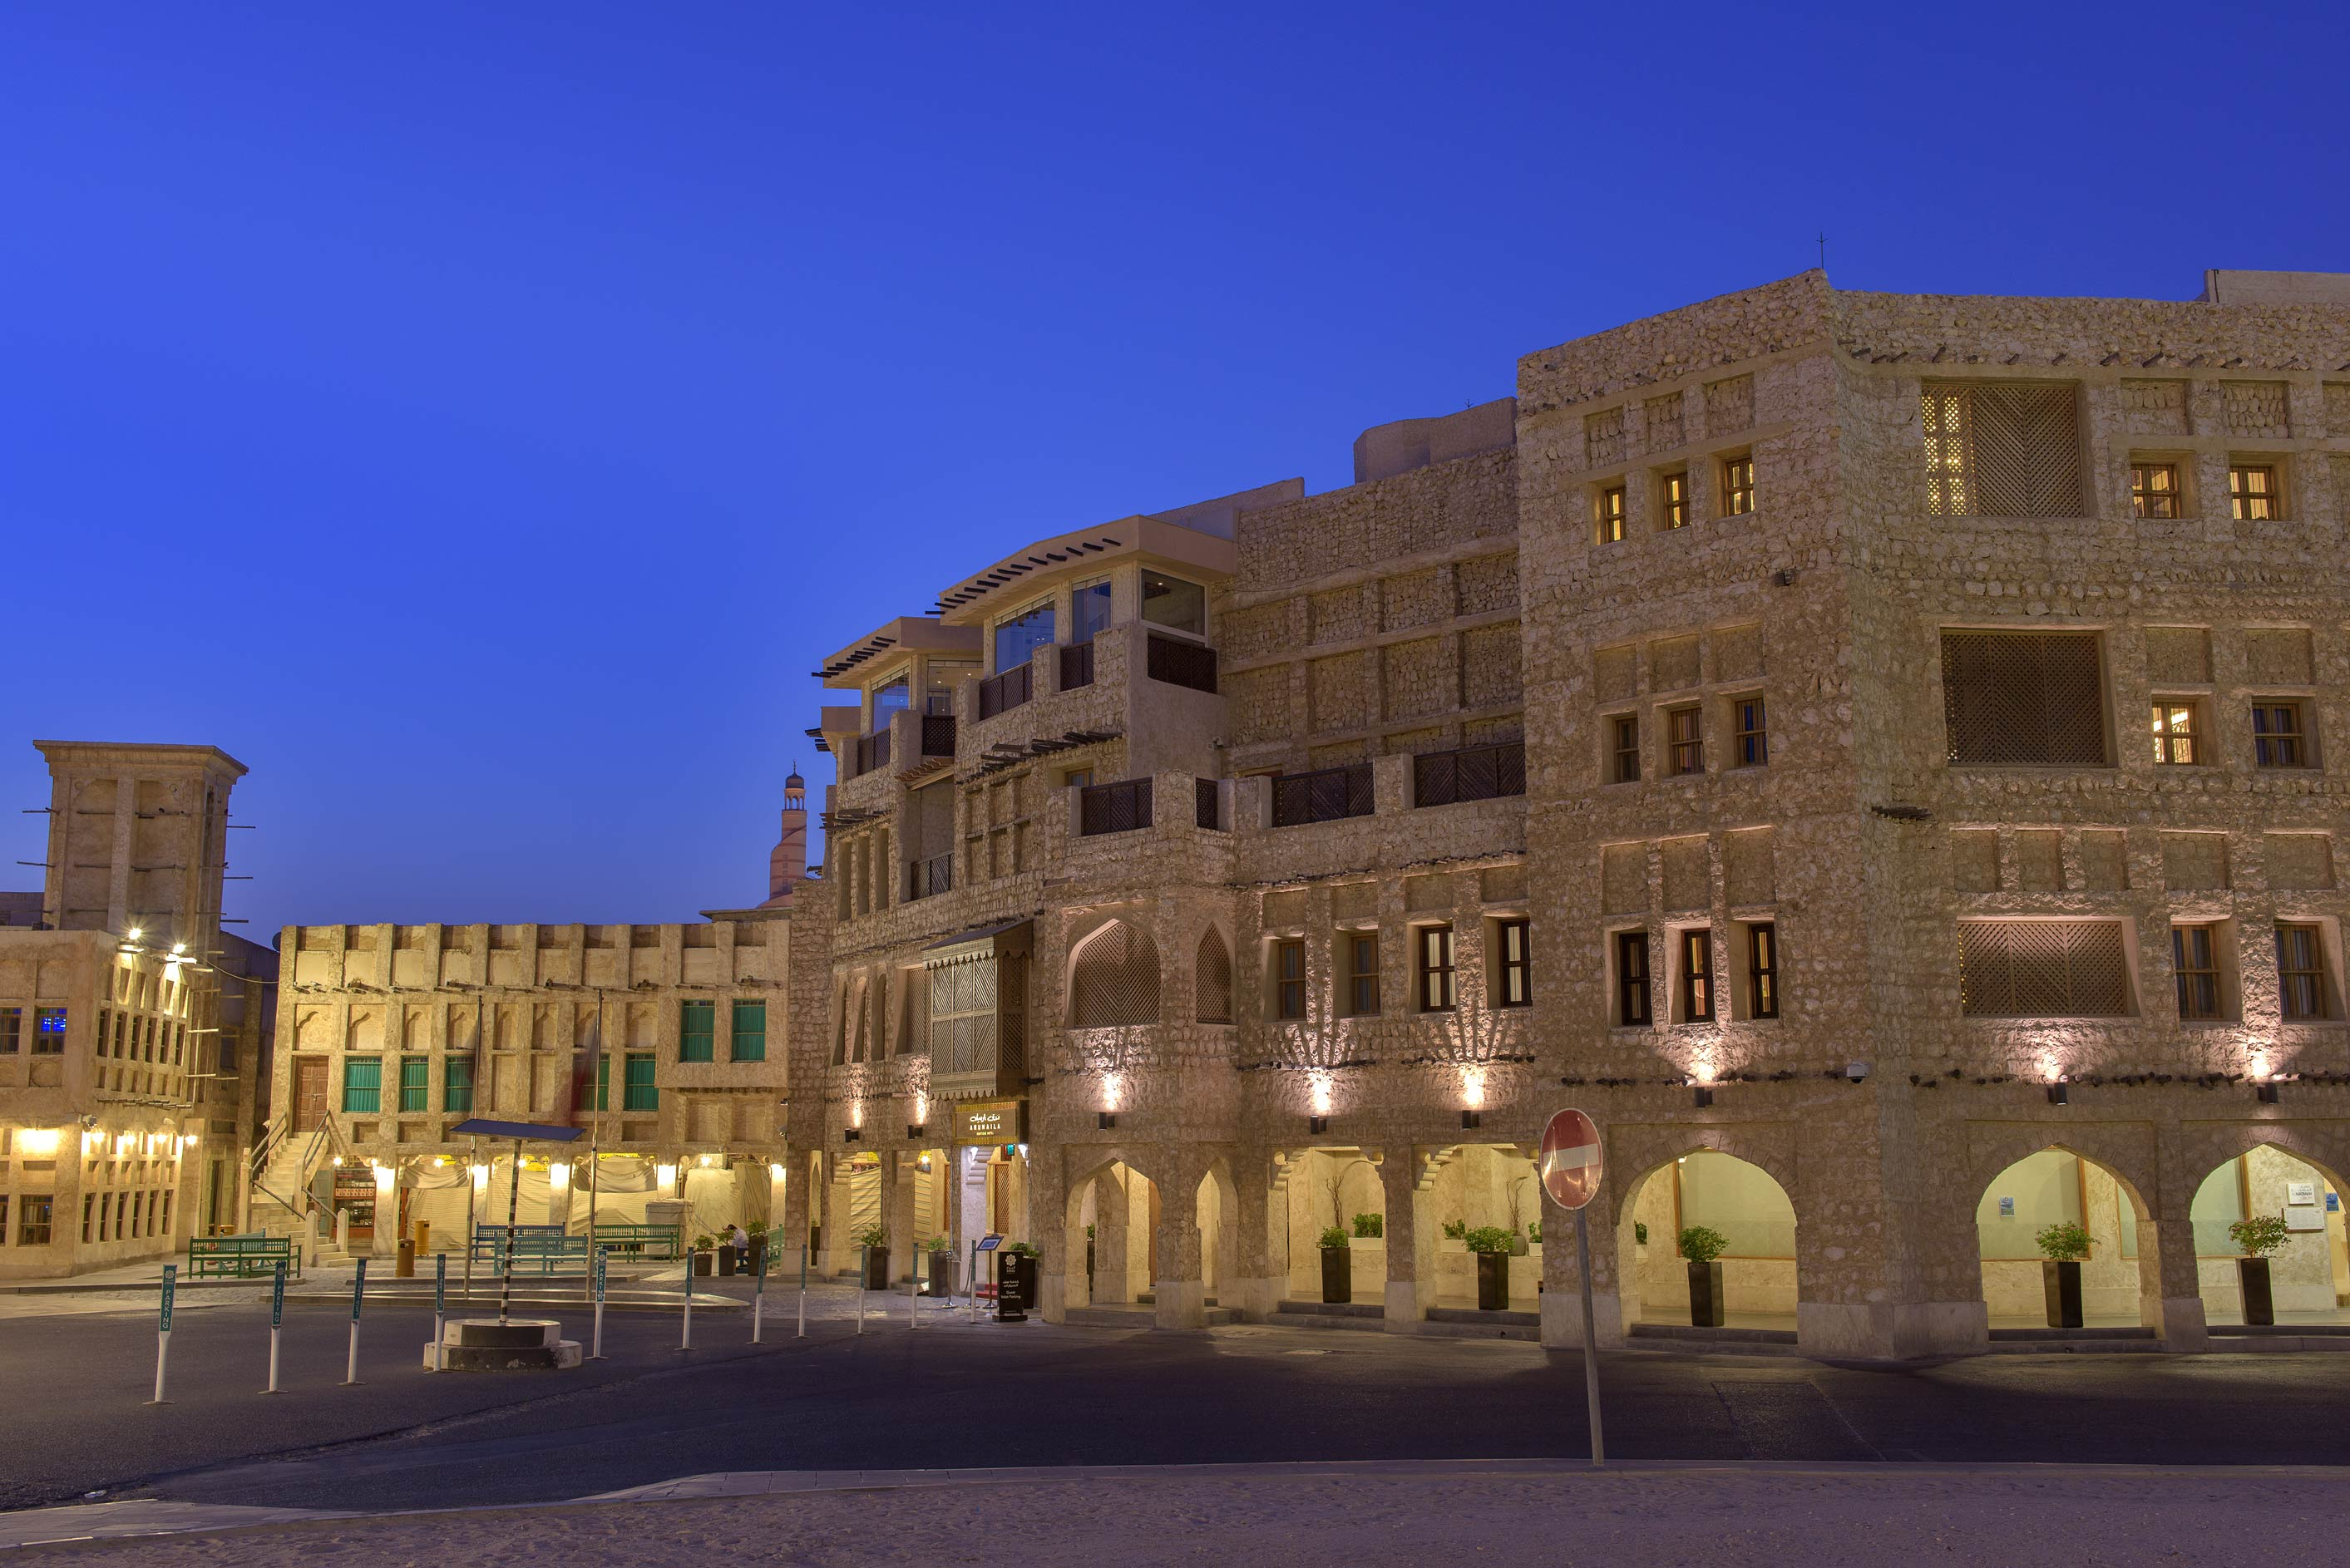 Square near Souq Waqif Mosque at morning. Doha, Qatar